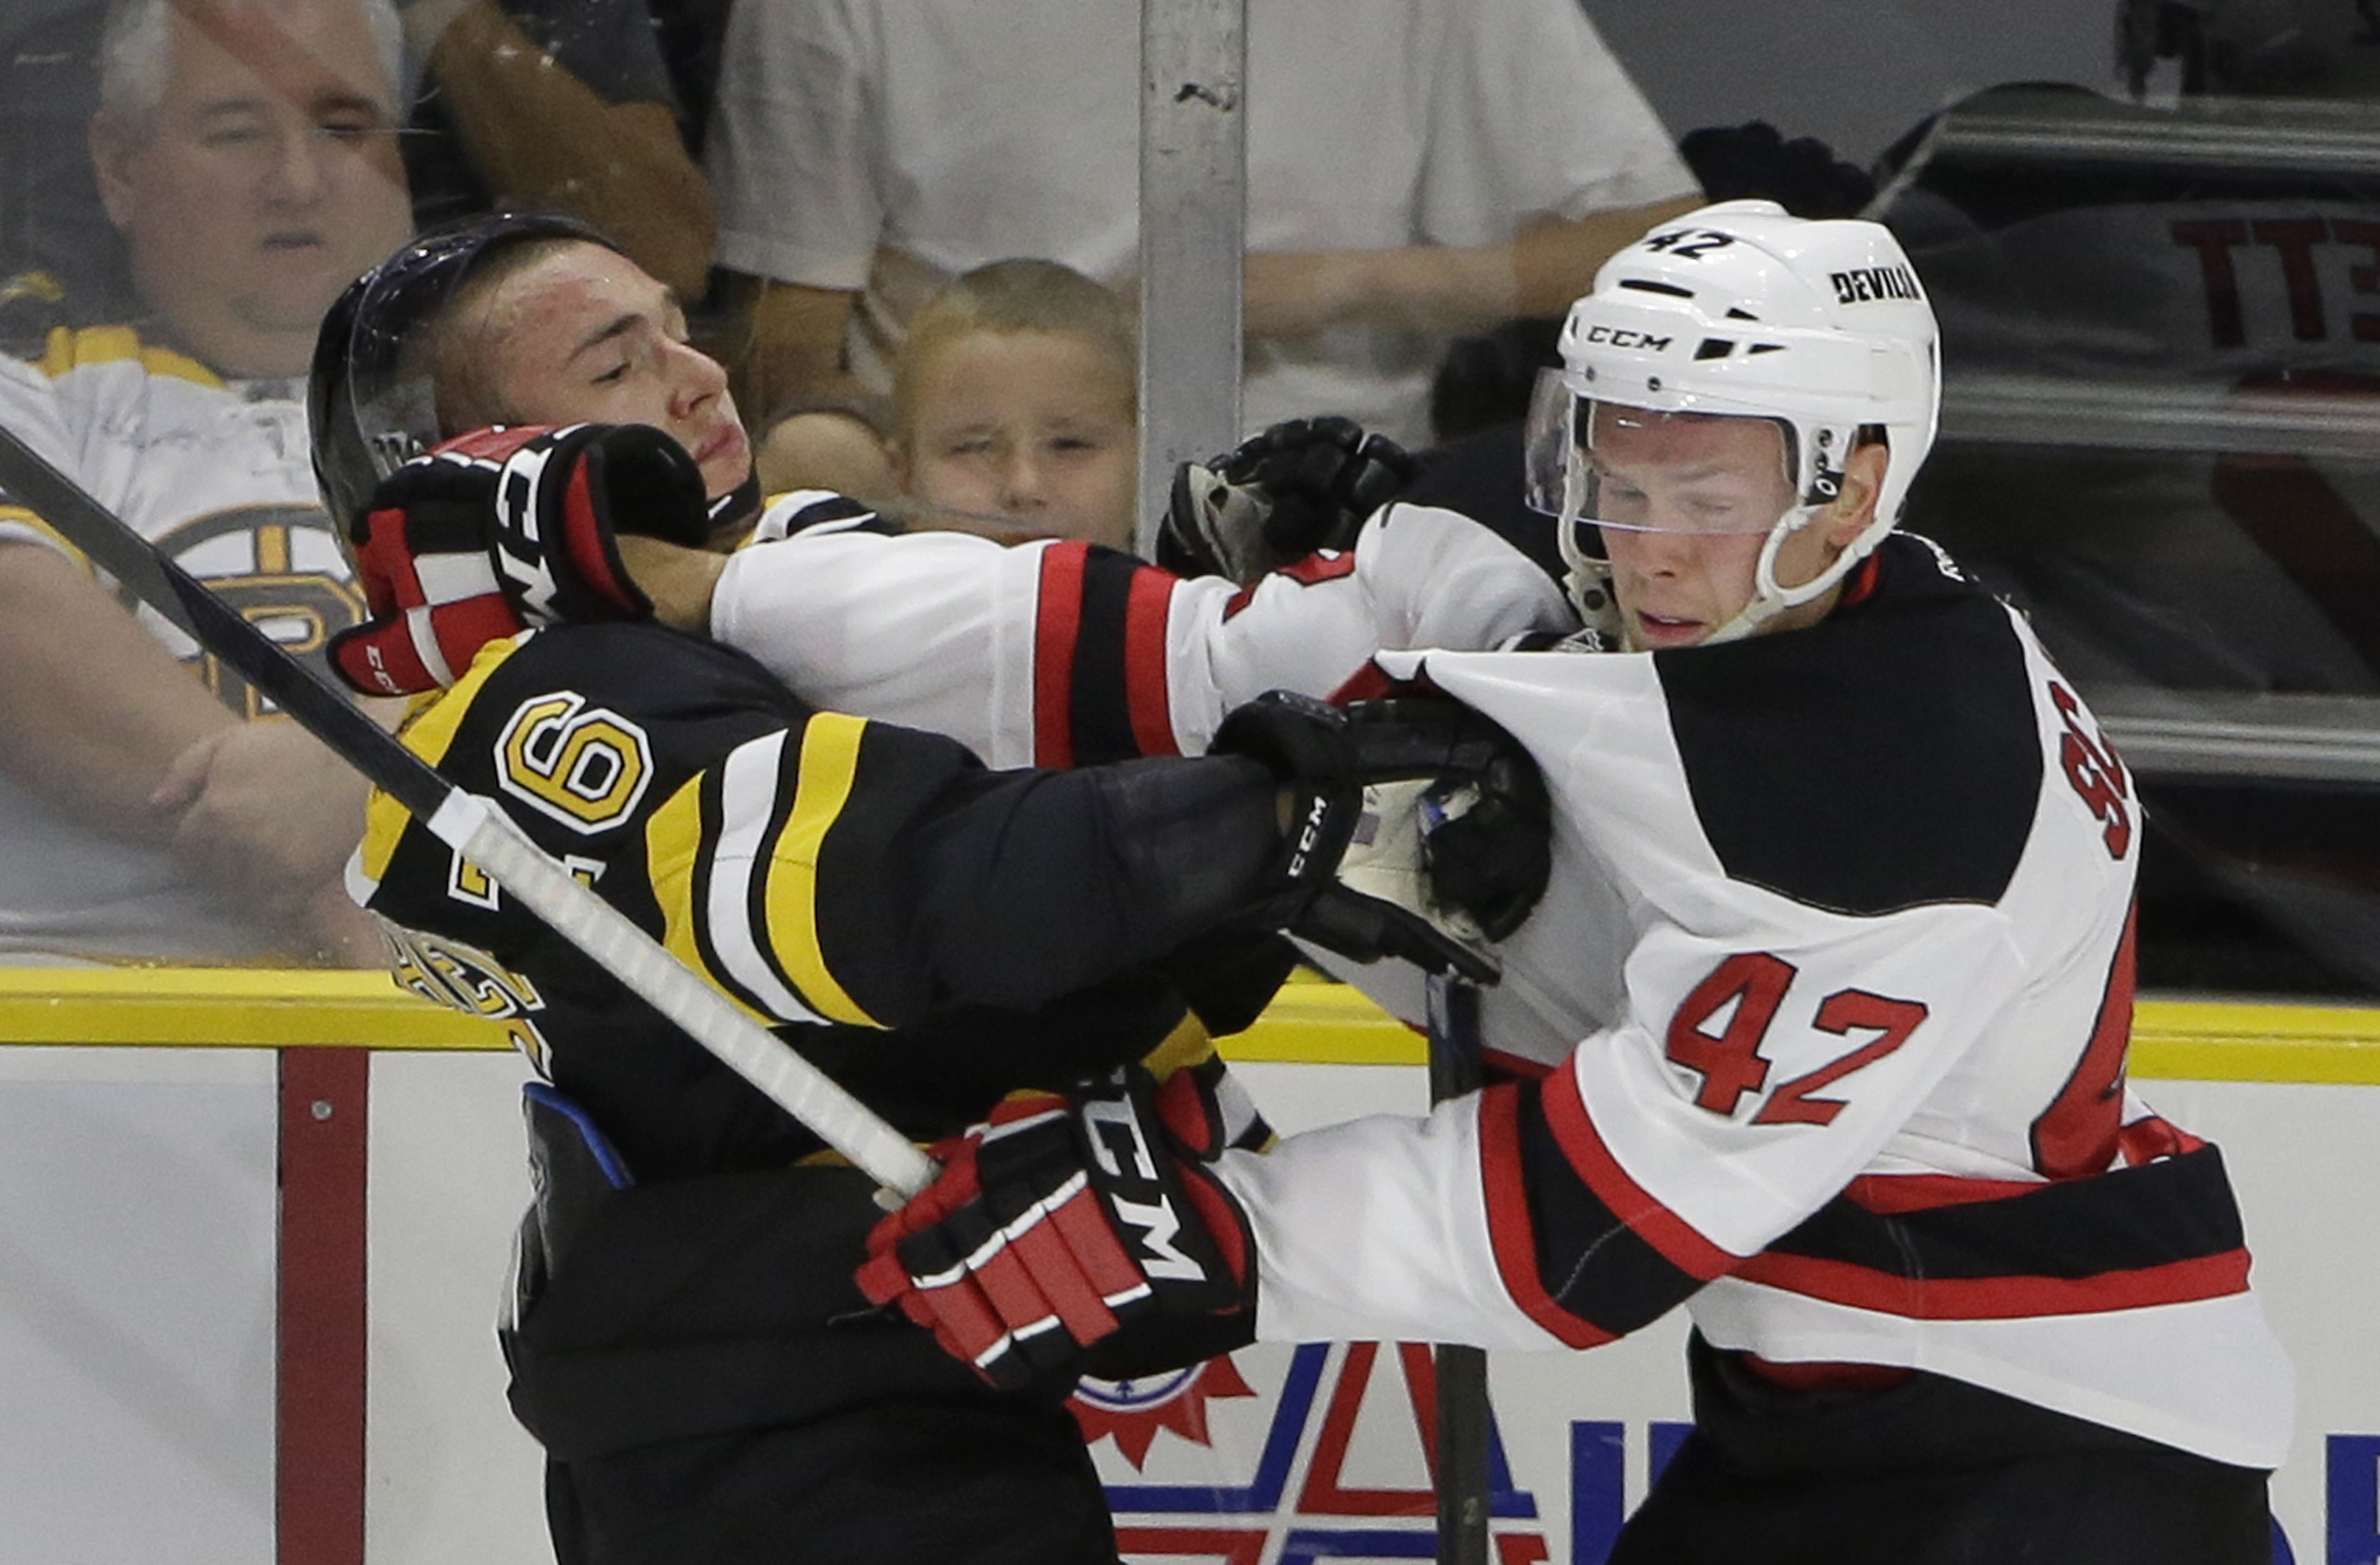 Boston Bruins center Alexander Khokhlachev, of Russia, left, exchanges jabs with New Jersey Devils defenseman Reece Scarlett, right, during the first period of an NHL preseason hockey game, Sunday, Sept. 20, 2015, in Providence, R.I. (AP Photo/Steven Senn